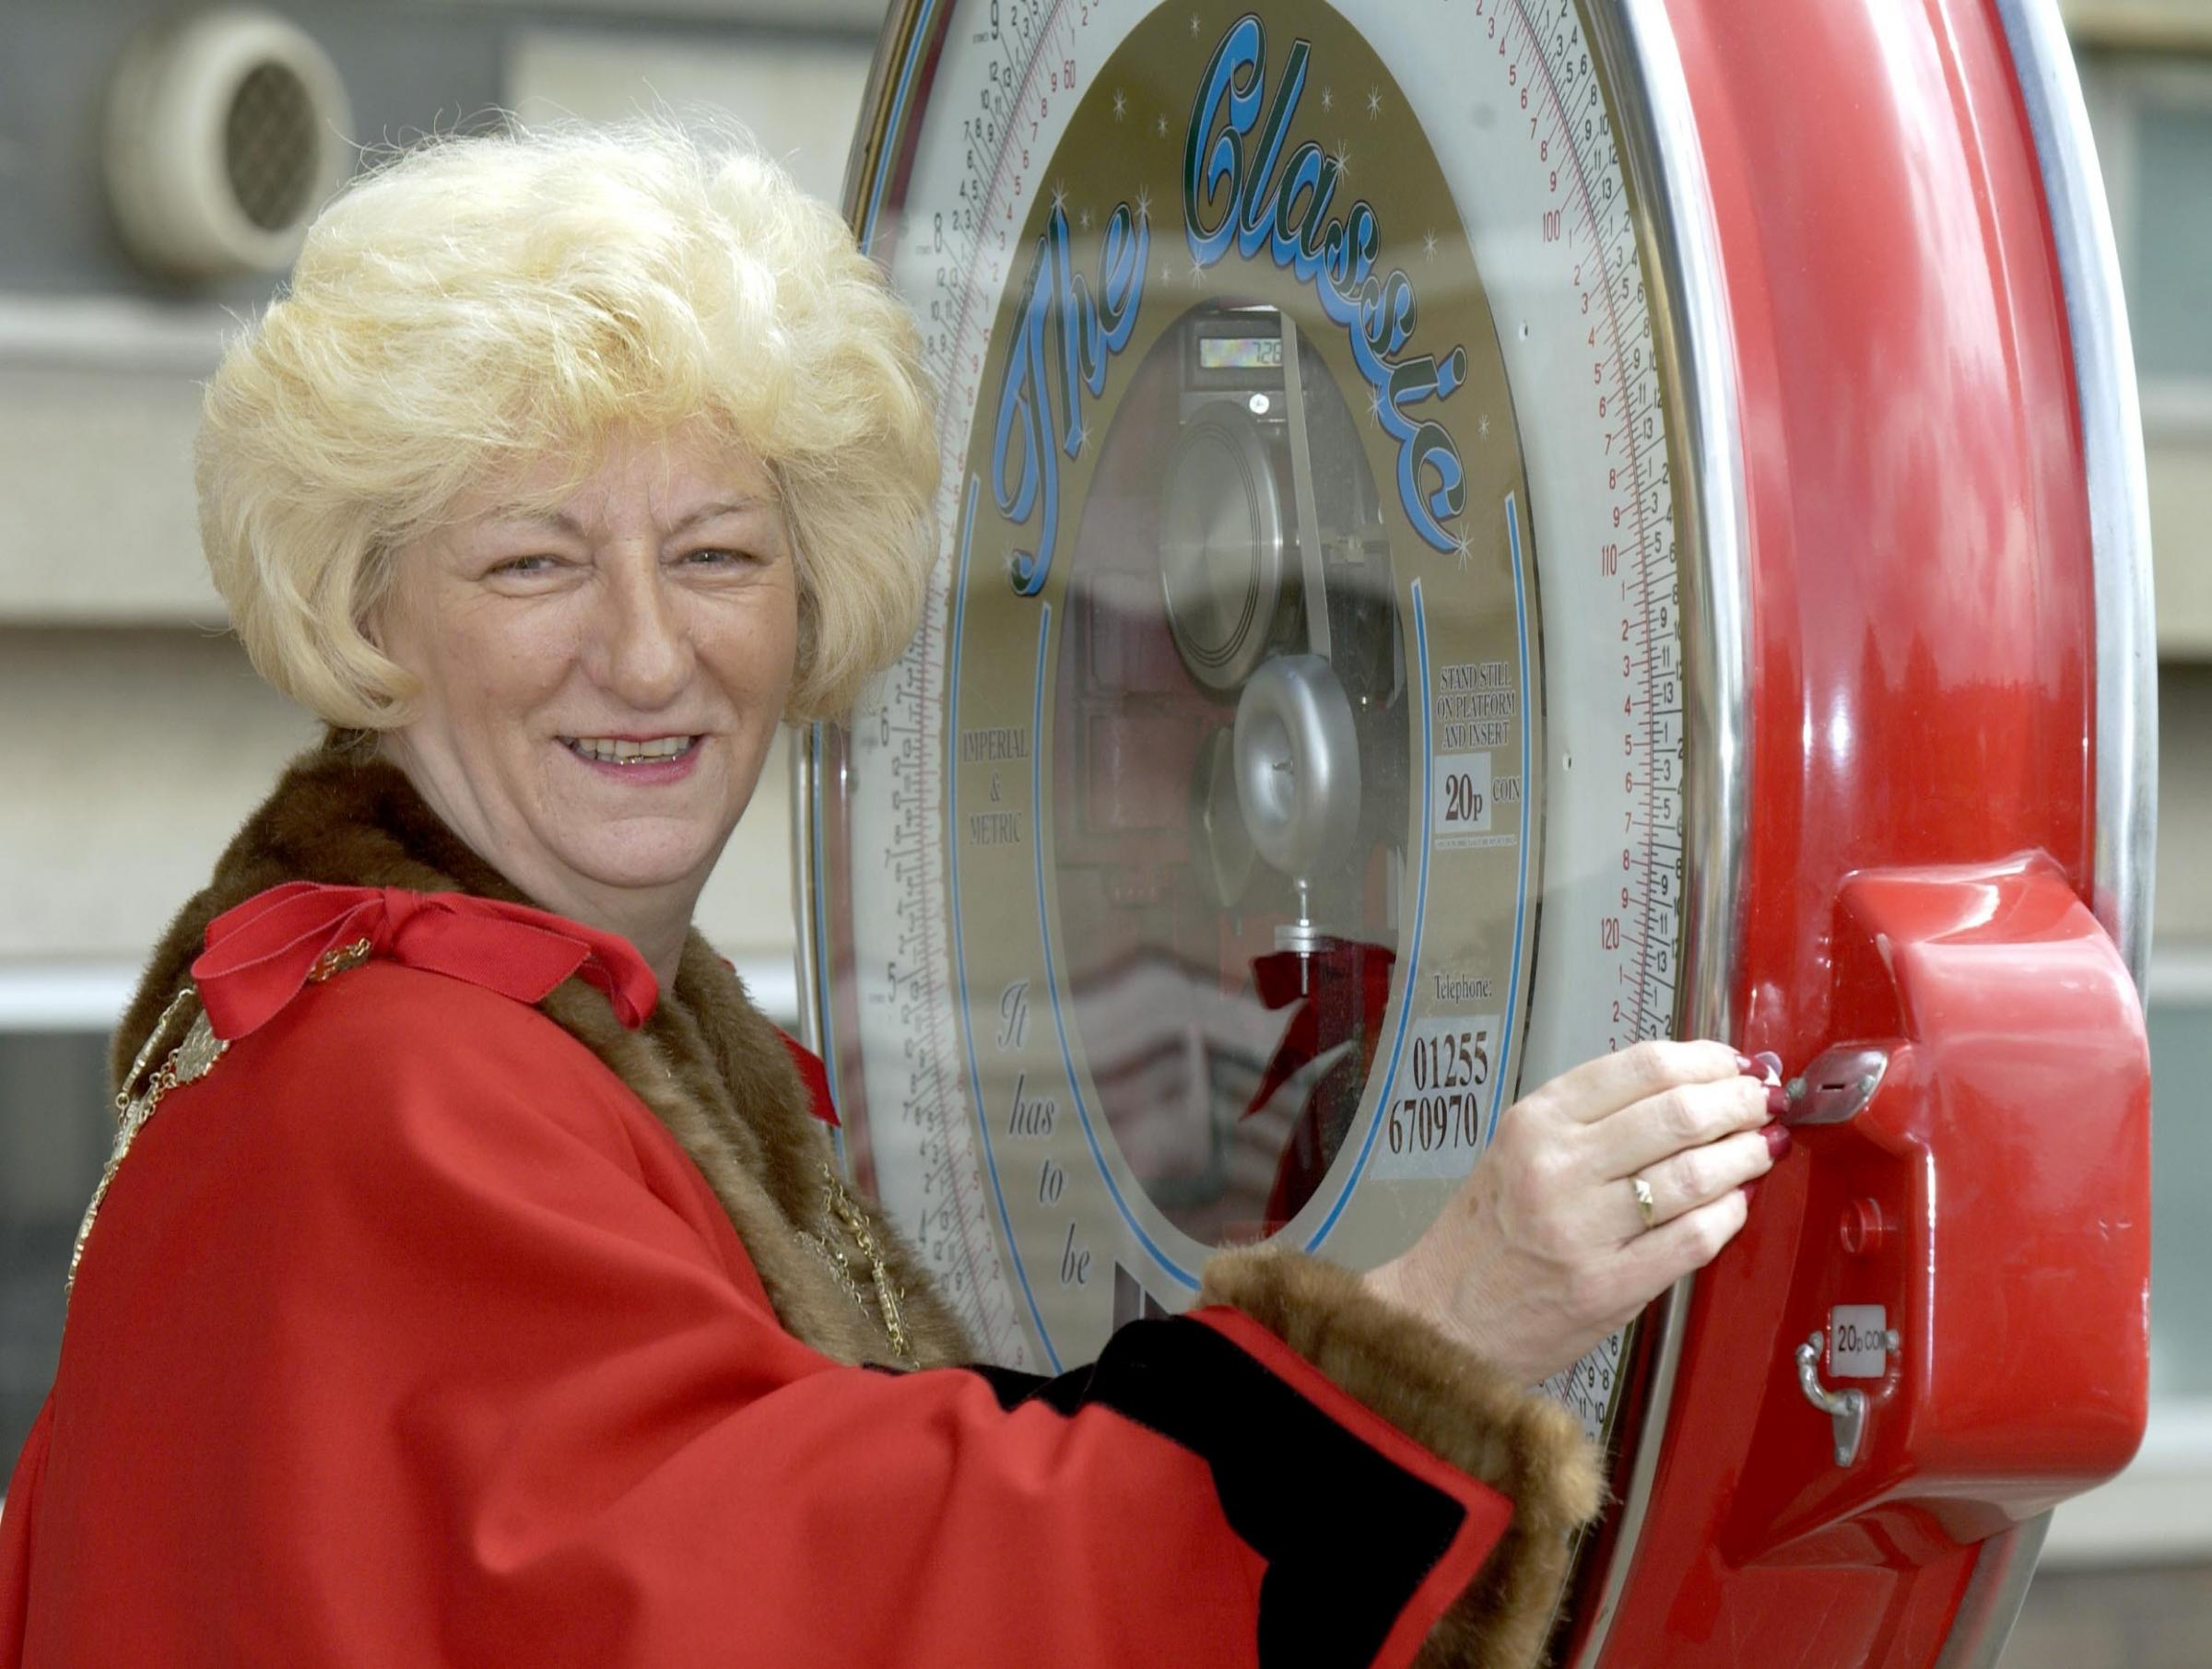 Margaret Bates, then Mayor of Kirklees, performs a civic duty in 2002 to celebrate Cleckheaton winning the weight of the mayor in chocolate